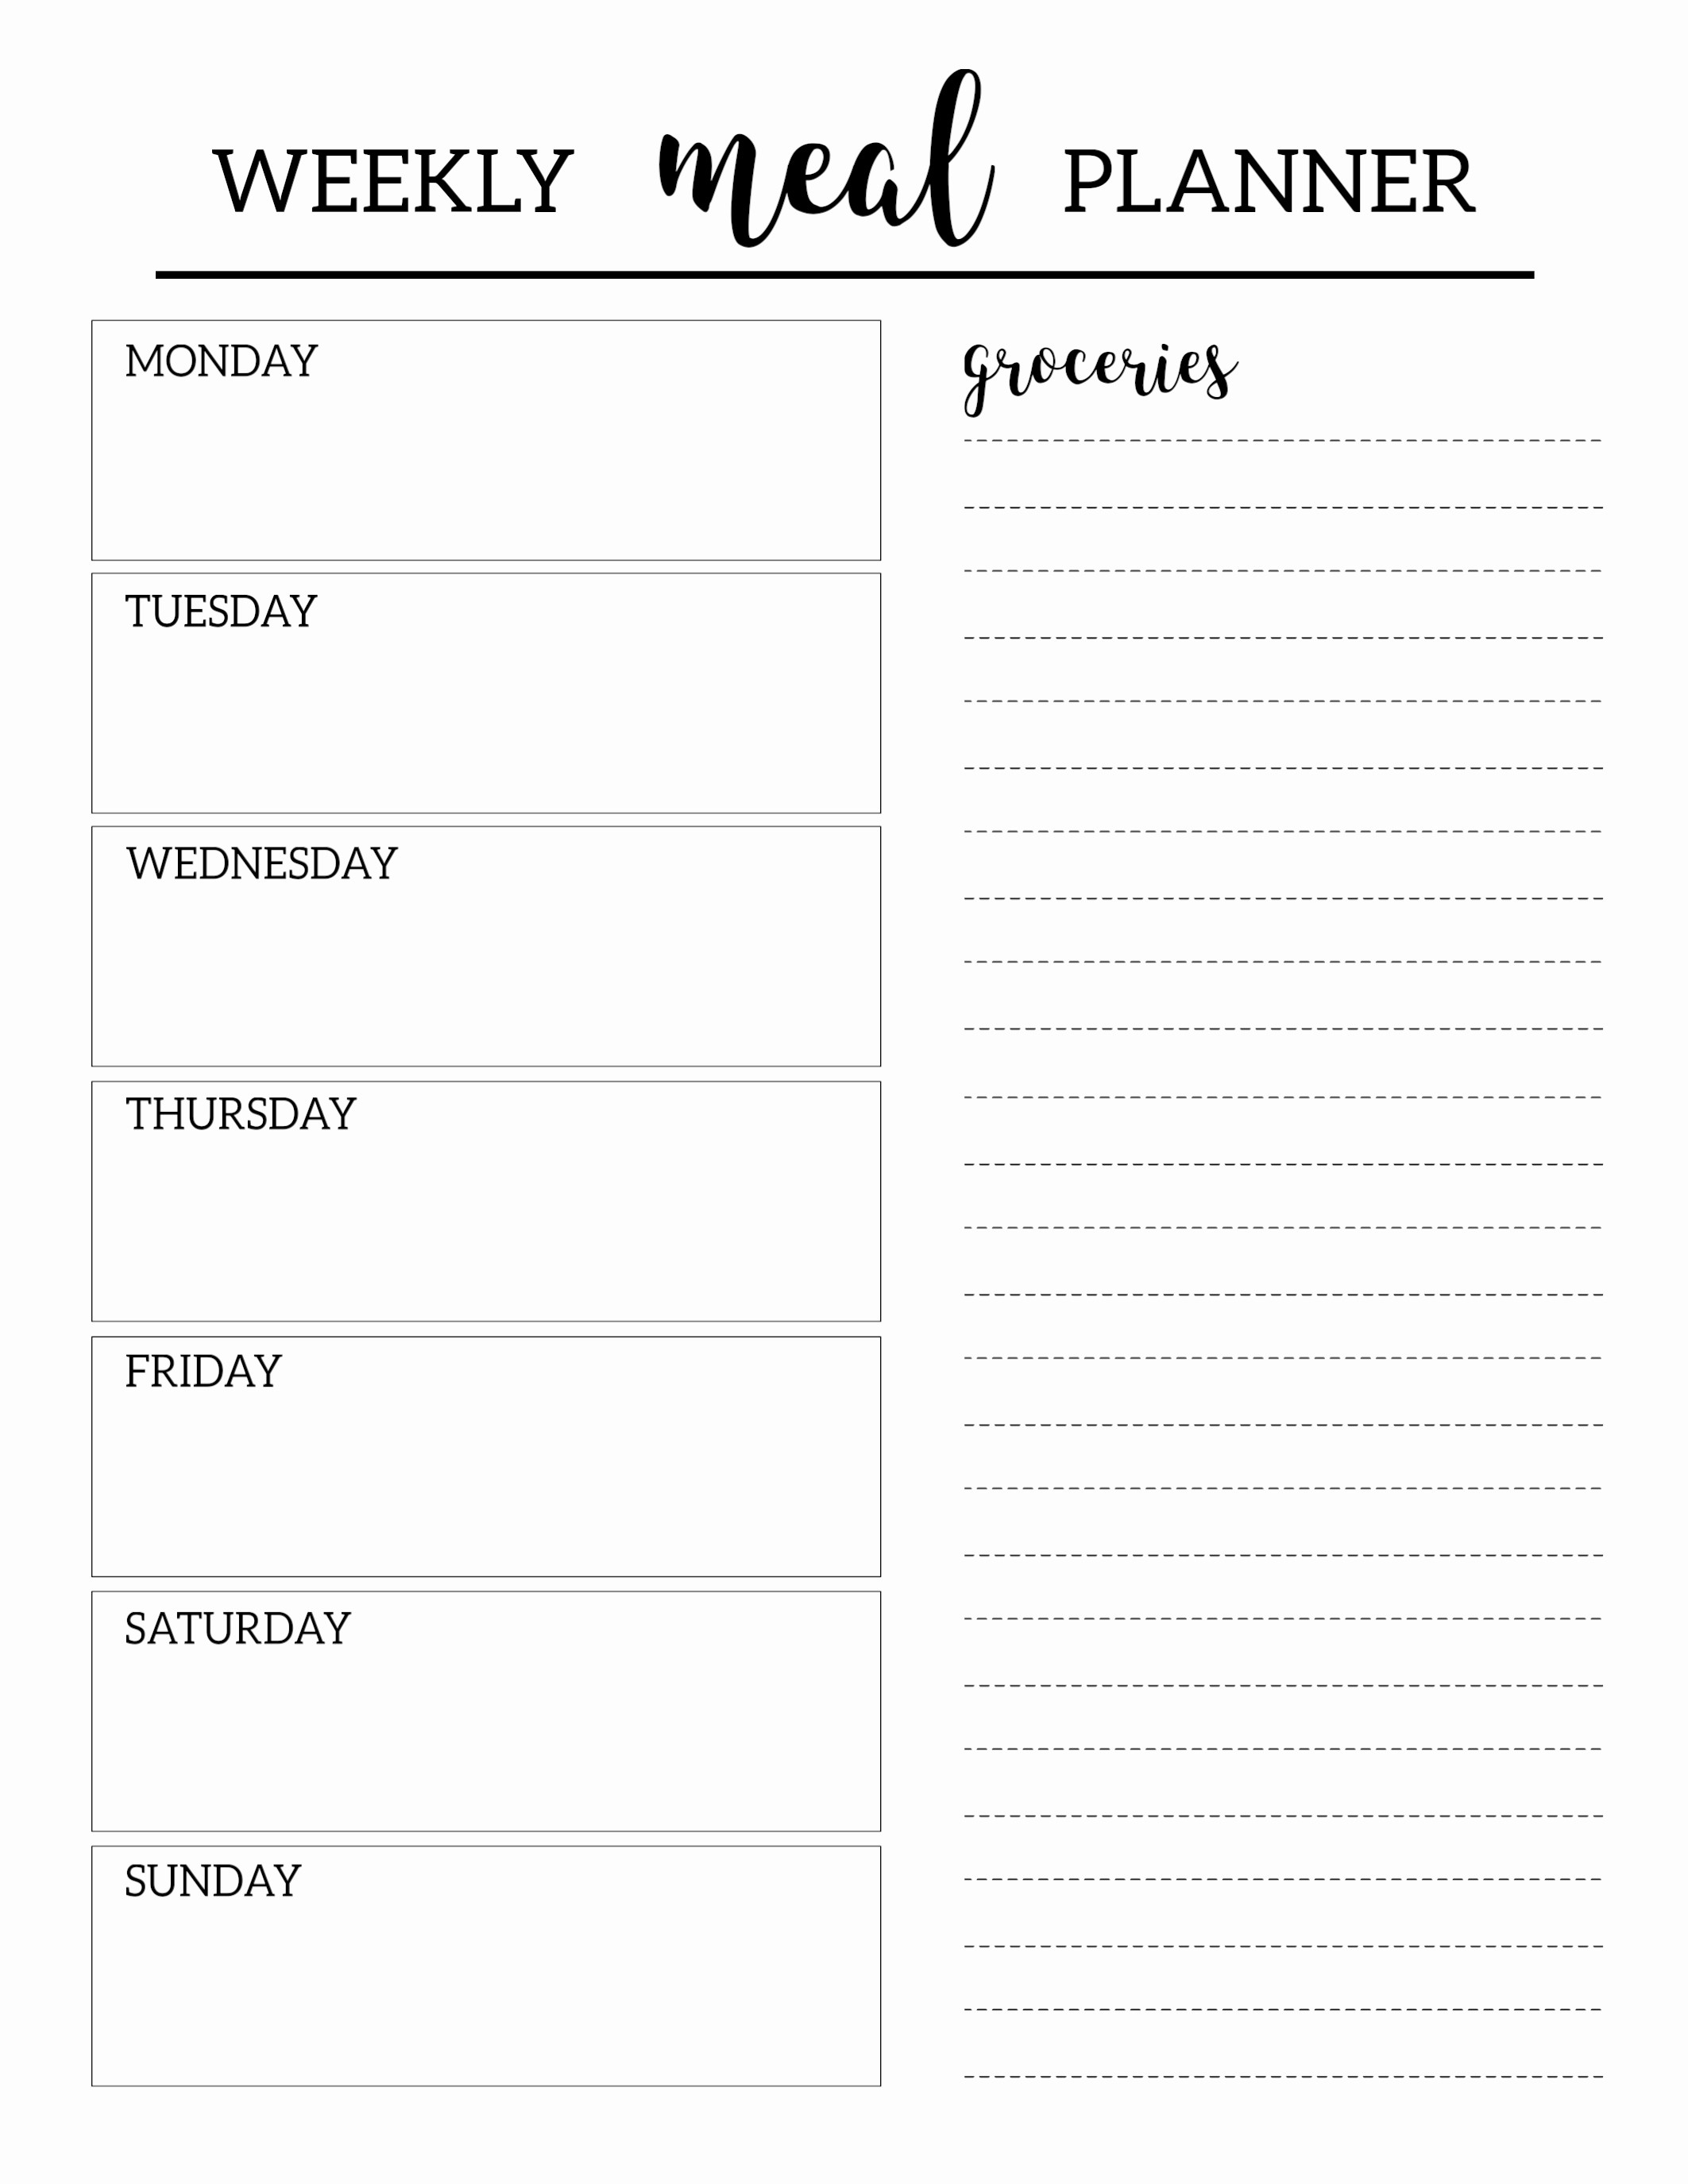 Free Meal Planner Template Download Best Of Free Printable Meal Planner Template Paper Trail Design